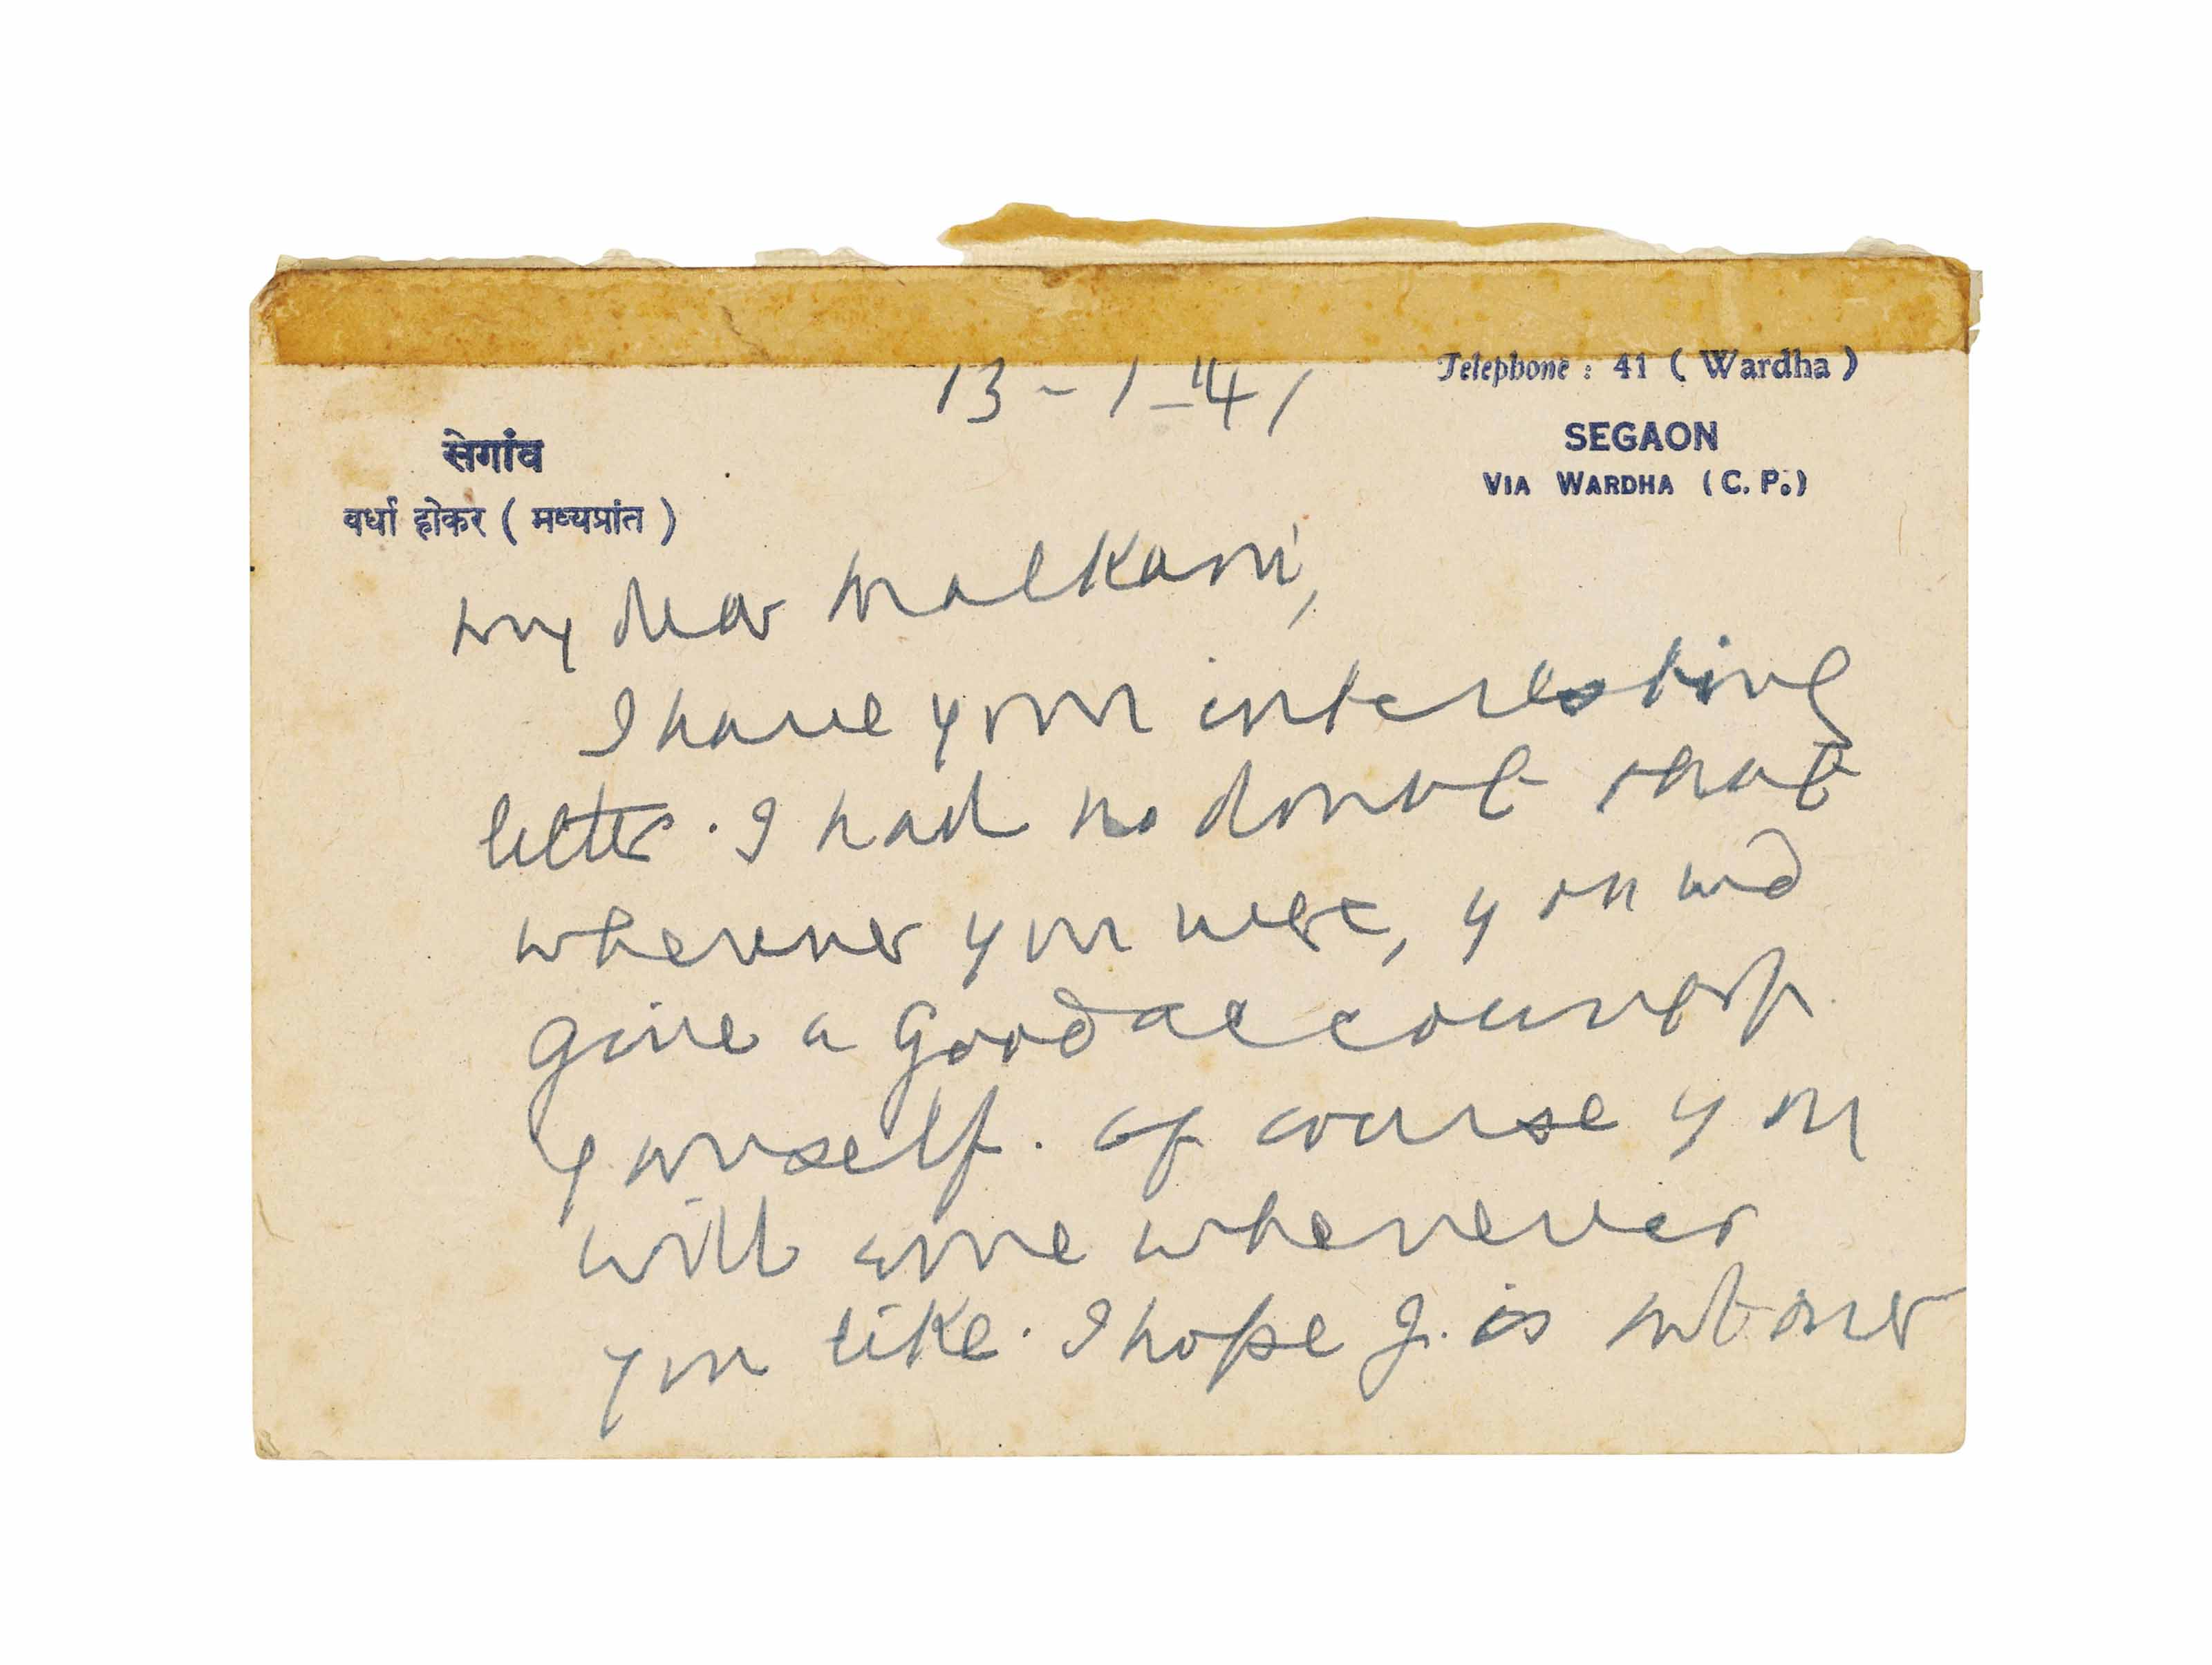 GANDHI, Mohandas Karamchand (1869-1948). Autograph postcard signed ('Bapu') to [N.H.] Malkani, [?Shegaon],13 January 1941, a typically brief note to an ally in the independence movement: 'I have your interesting letter. I had no doubt that wherever you were, you would give a good account of yourself. Of course you will come whenever you like. I hope J. is not over working himself. Let him keep himself in reserve. Of course no [?S] in Sindh', 1½ pages, oblong 8vo.